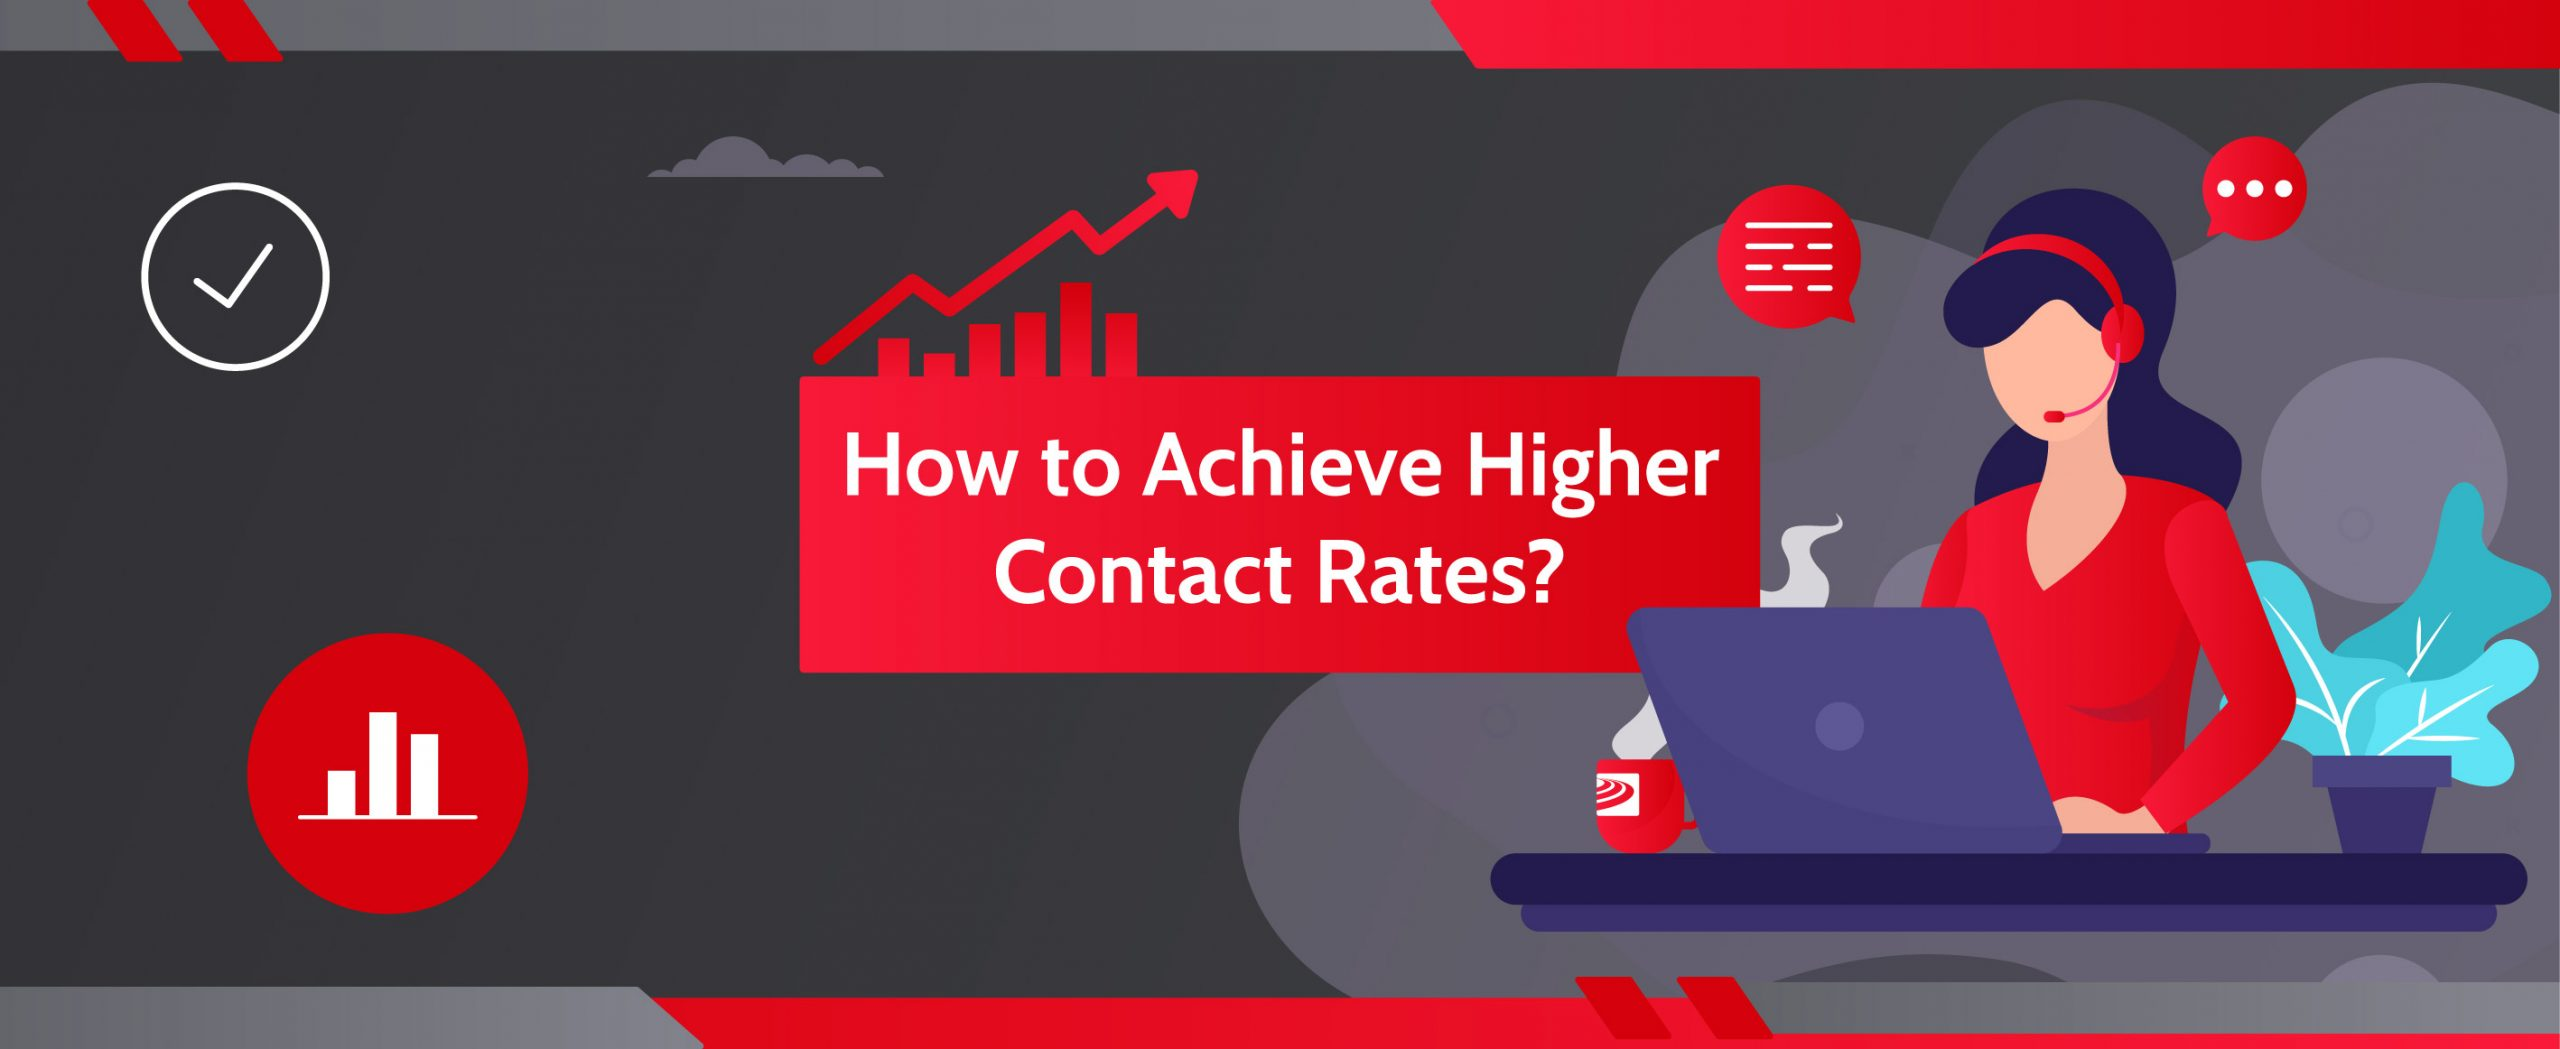 How to Achieve Higher Contact Rates?